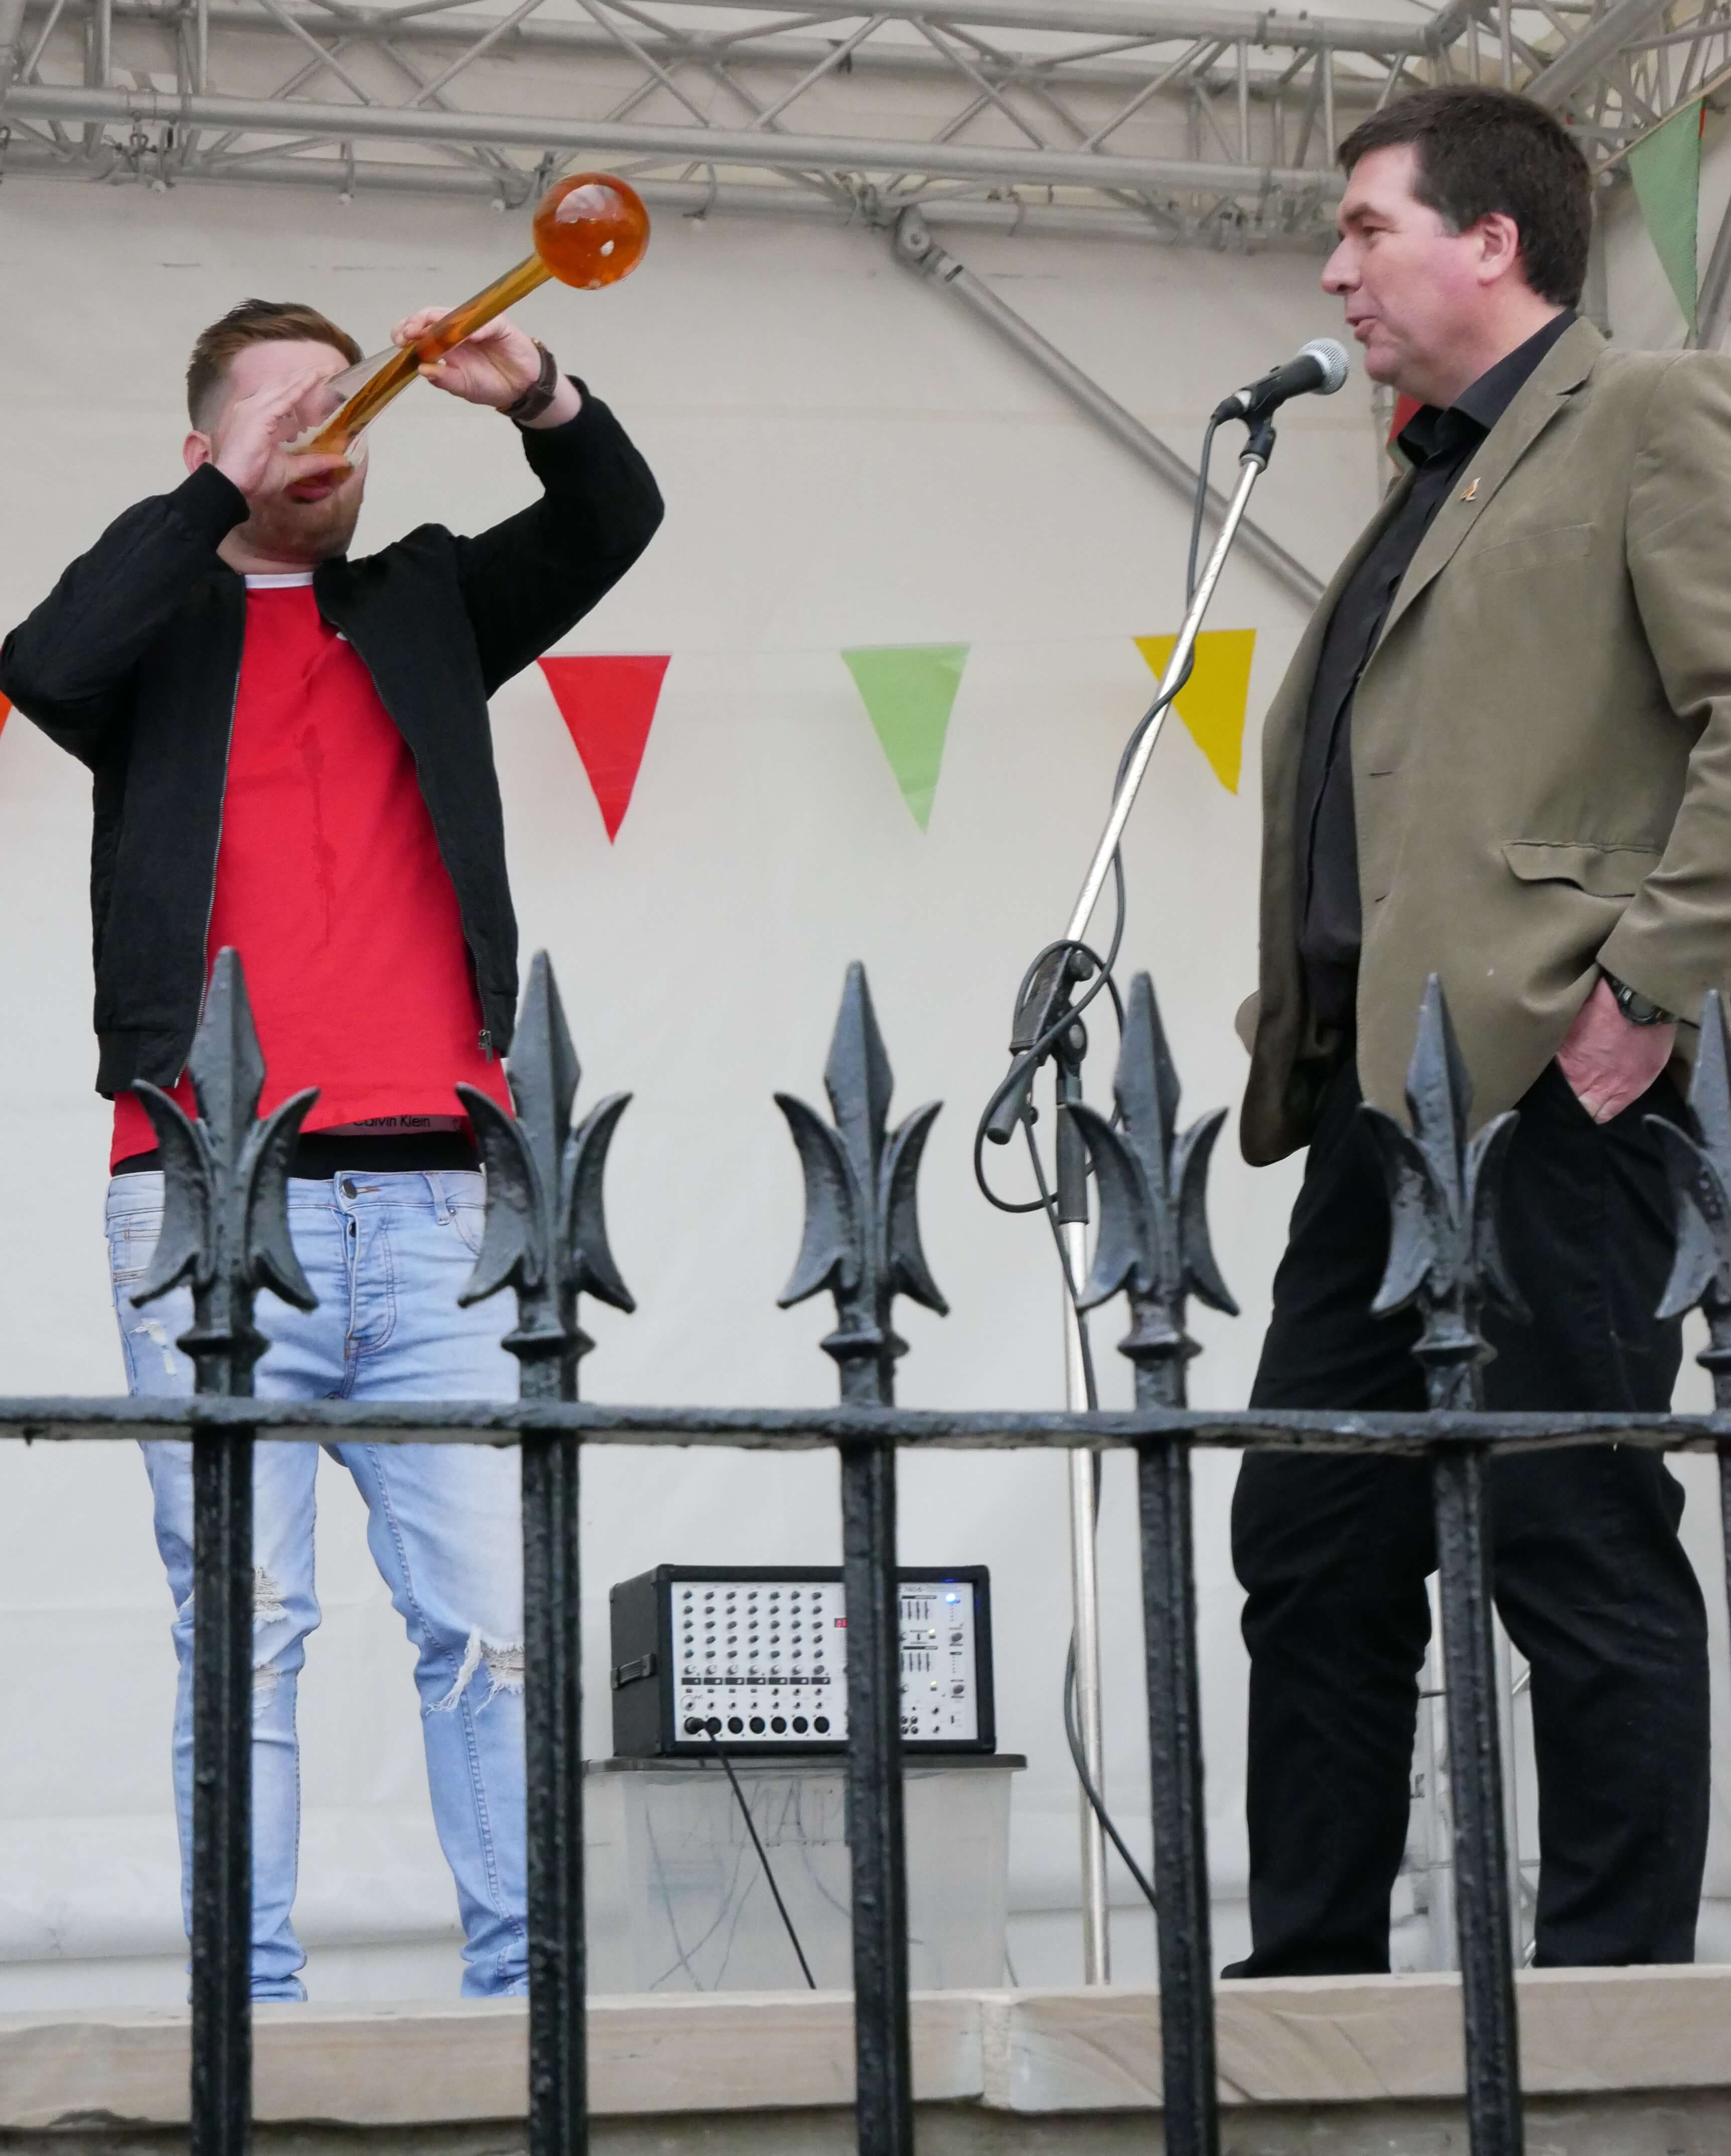 Stromness Shopping Week - a gala collection of silliness and frivolity, such as the